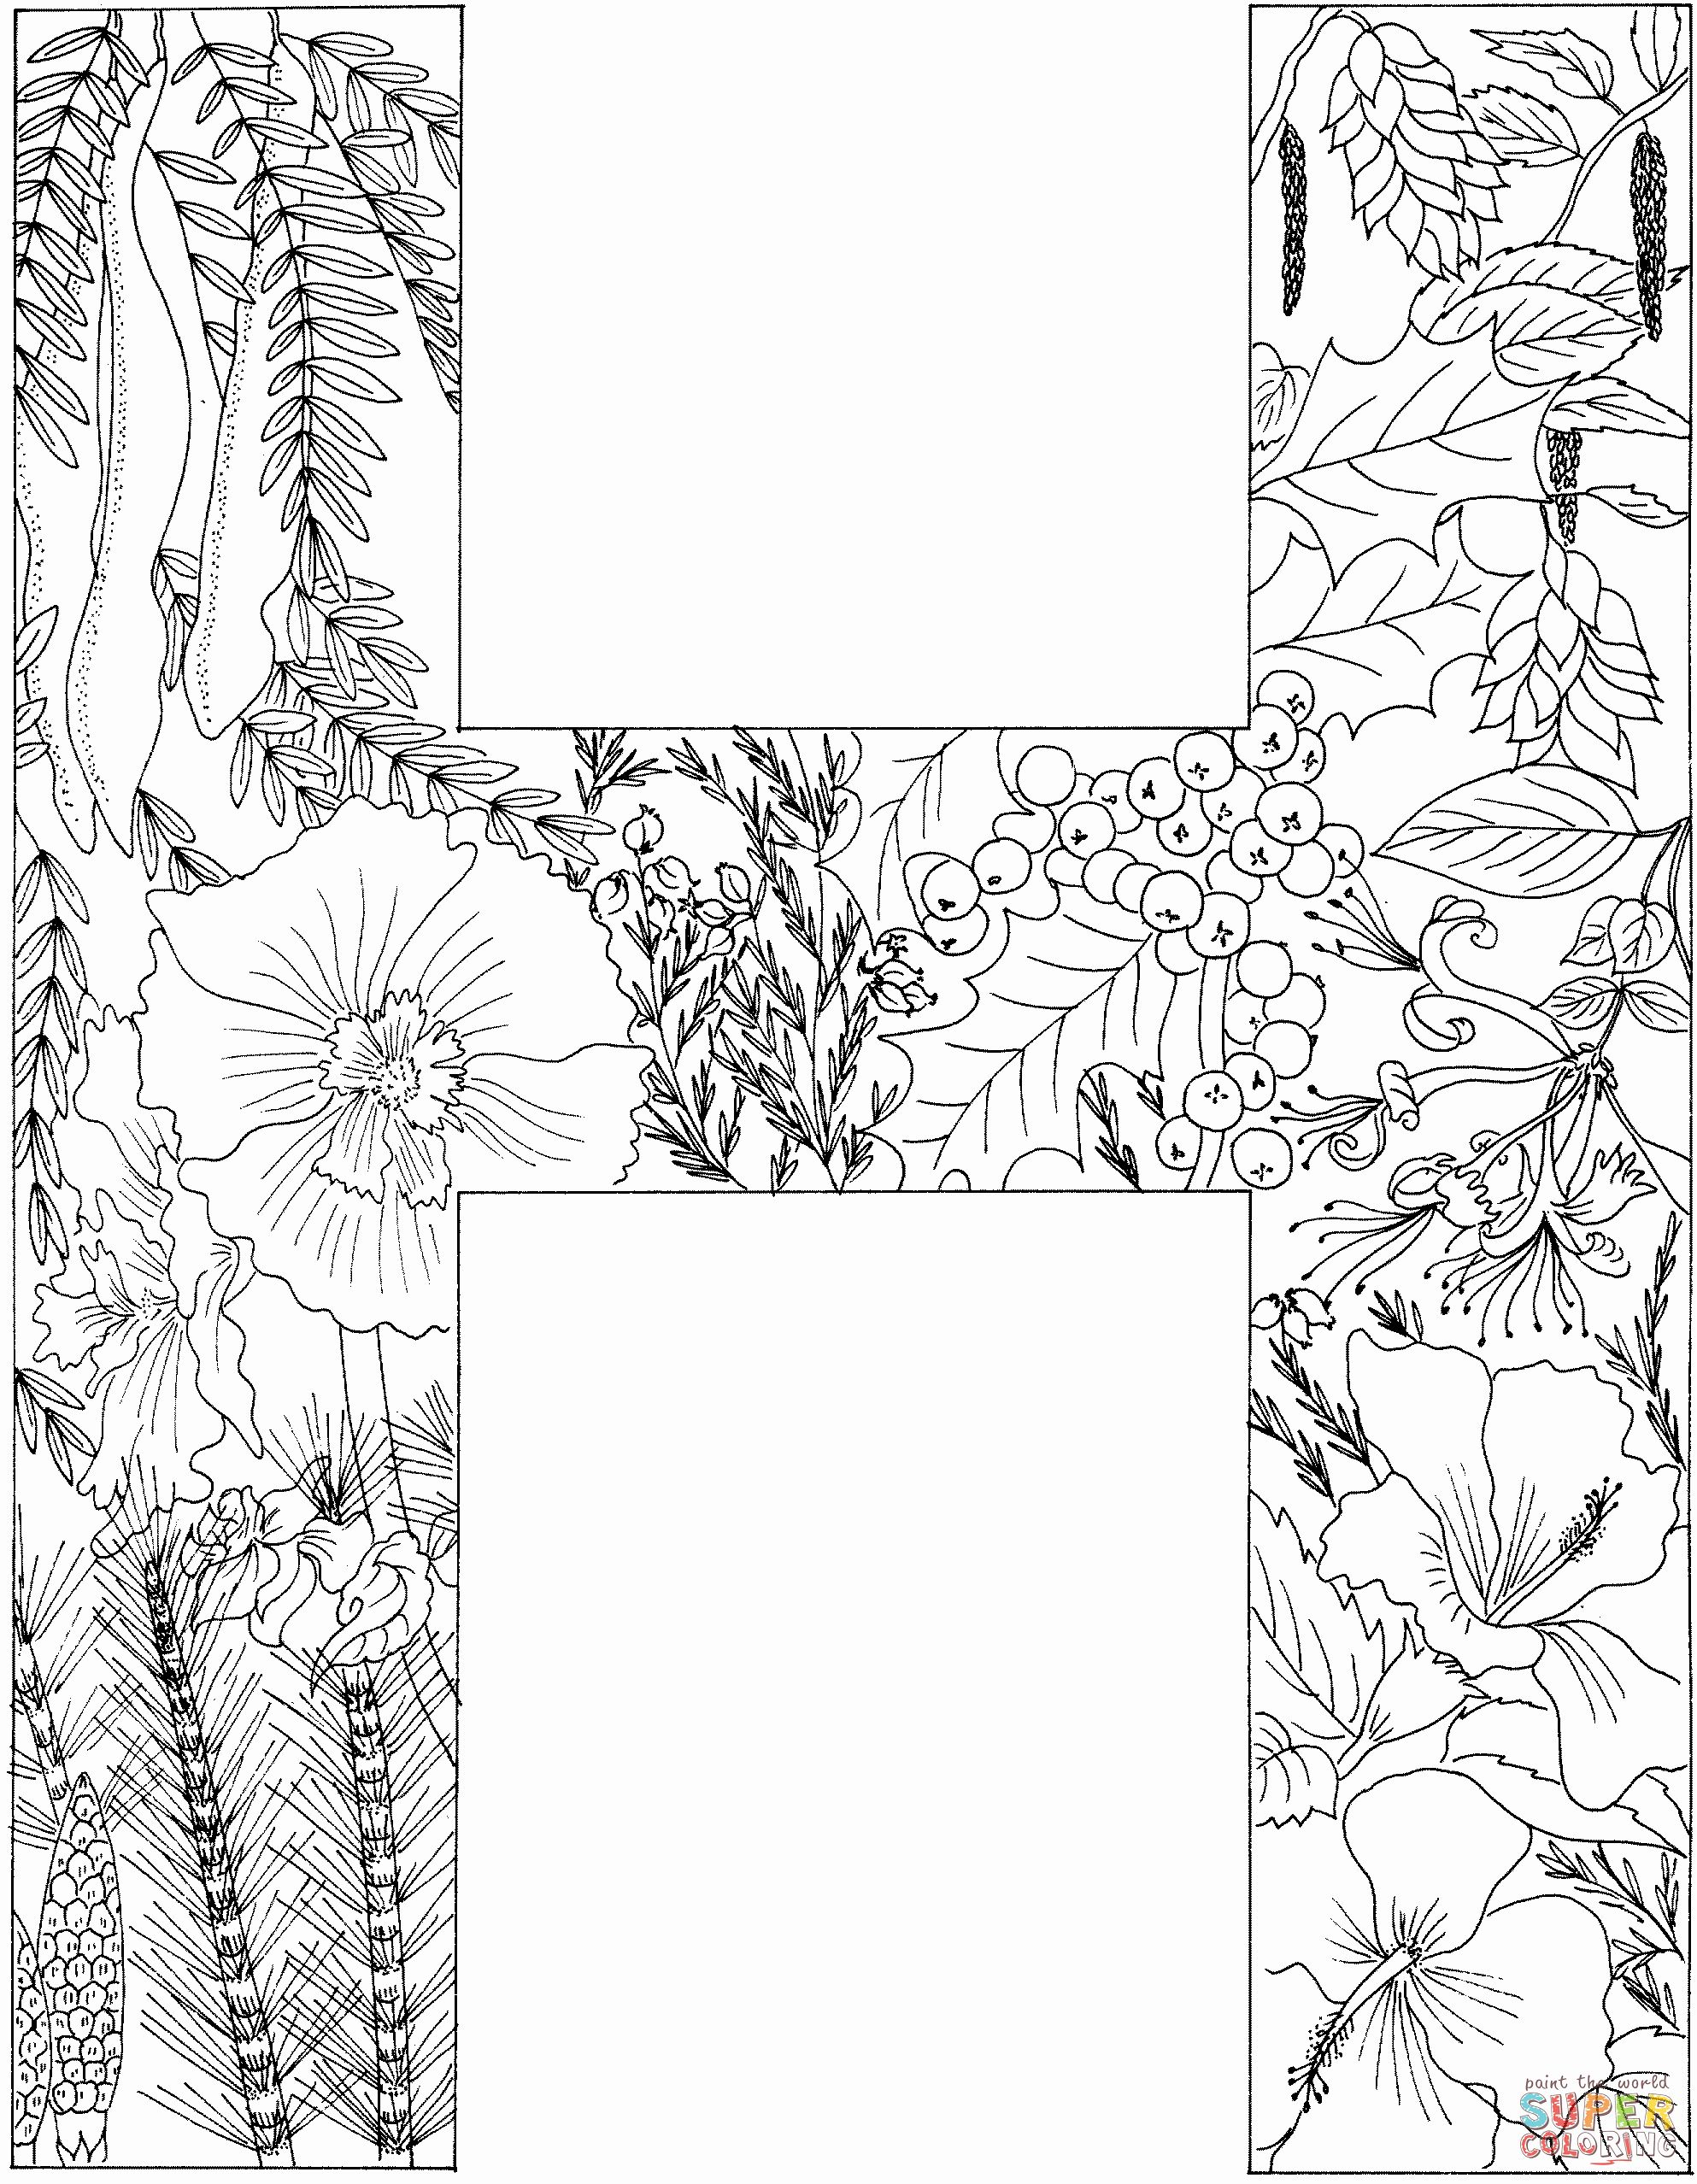 Letter H Coloring Page Inspirational Letter H With Plants Coloring Page In 2020 Alphabet Coloring Pages Coloring Pages Free Disney Coloring Pages